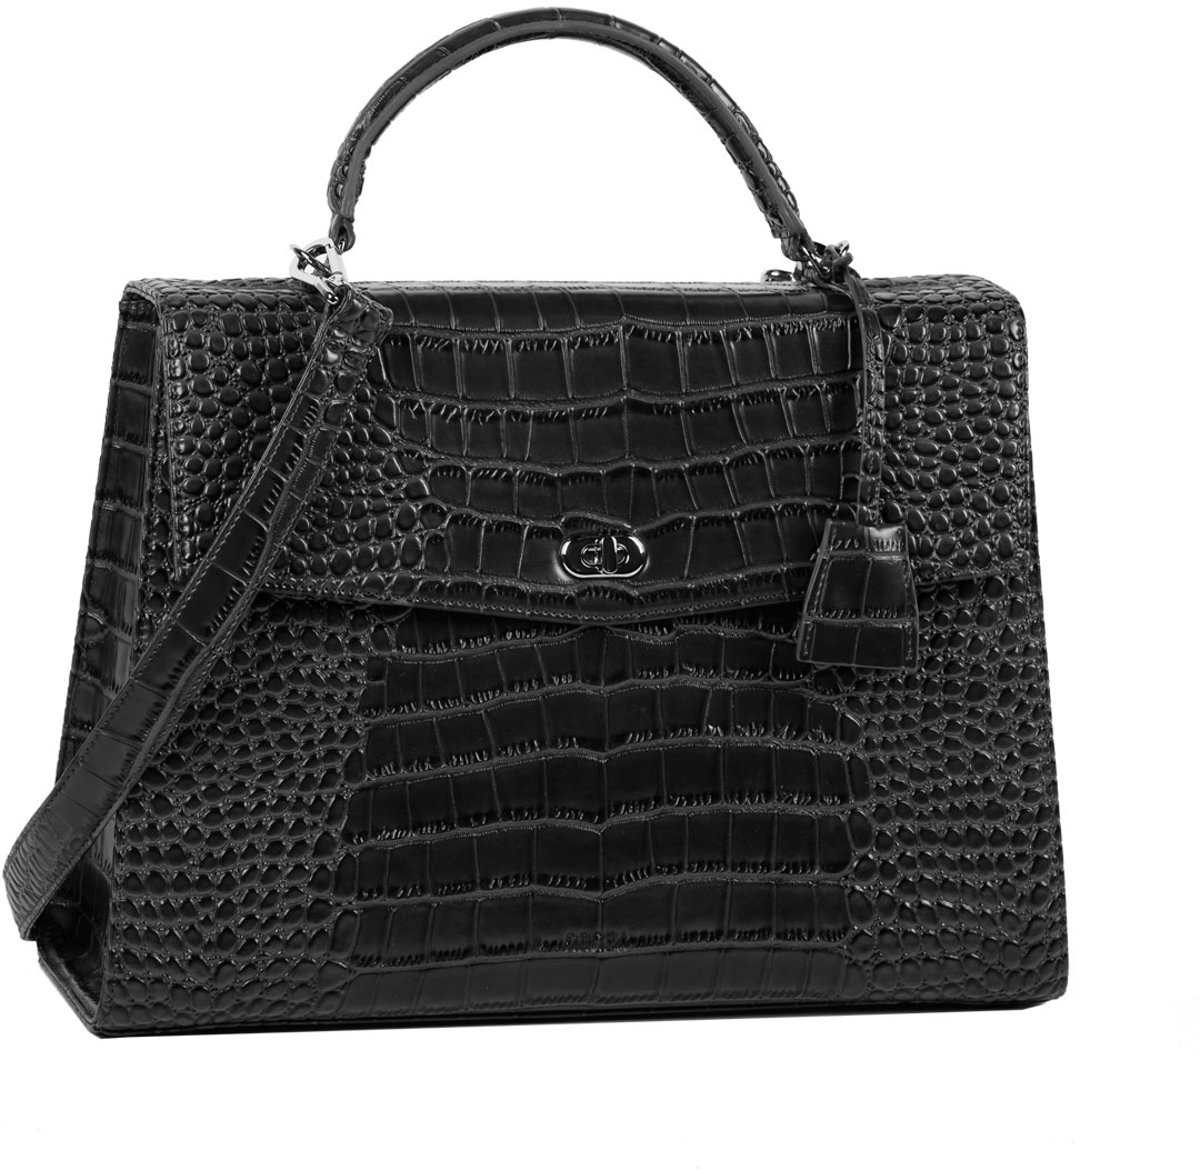 "Socha Socha Audrey Businessbag 13.3"" Croco Black"